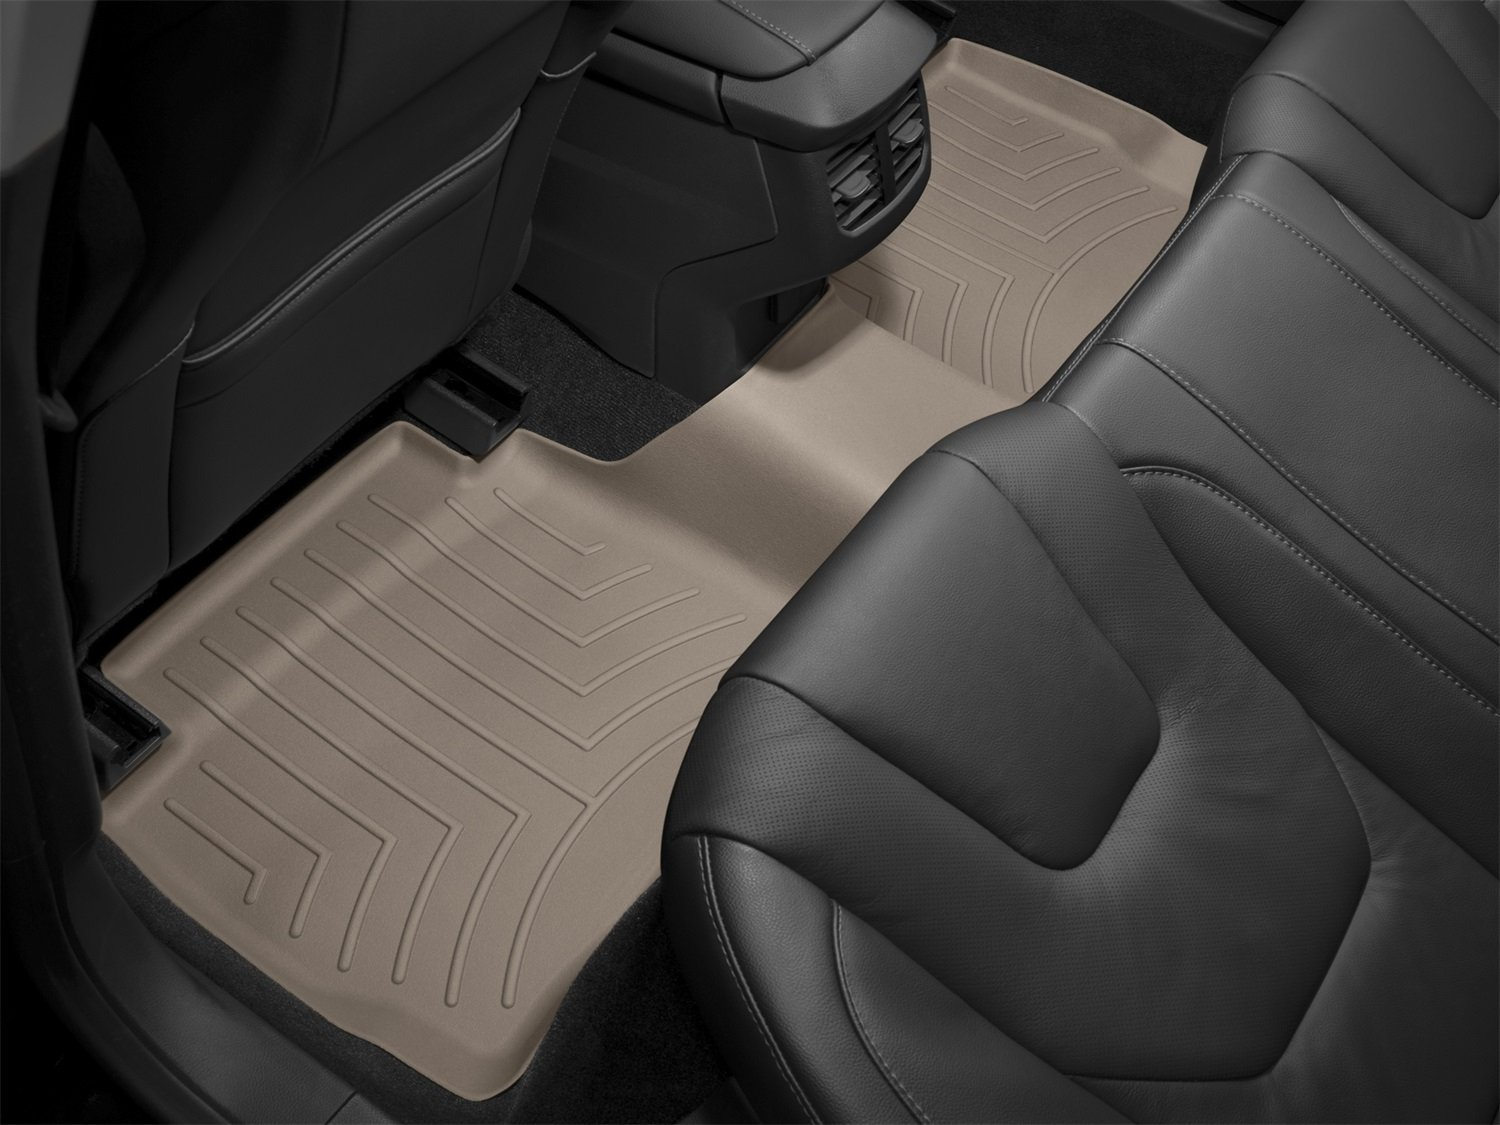 Amazon.com: WeatherTech Custom Fit Rear FloorLiner for Chevrolet Suburban, Tan: Automotive